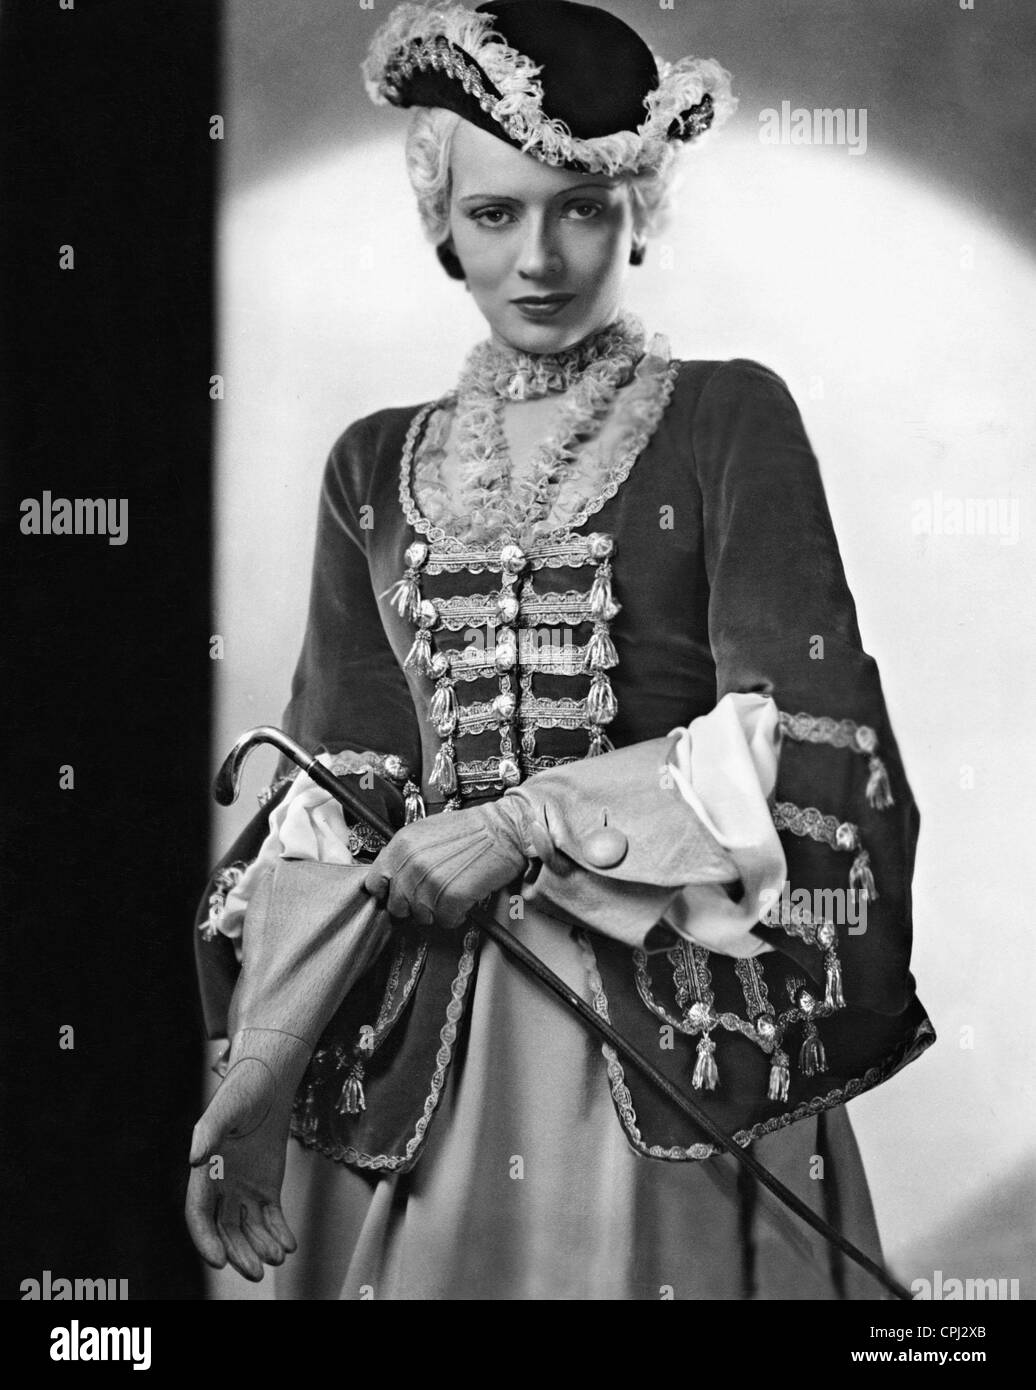 Gina Falckenberg in 'The Gypsy Baron', 1935 - Stock Image